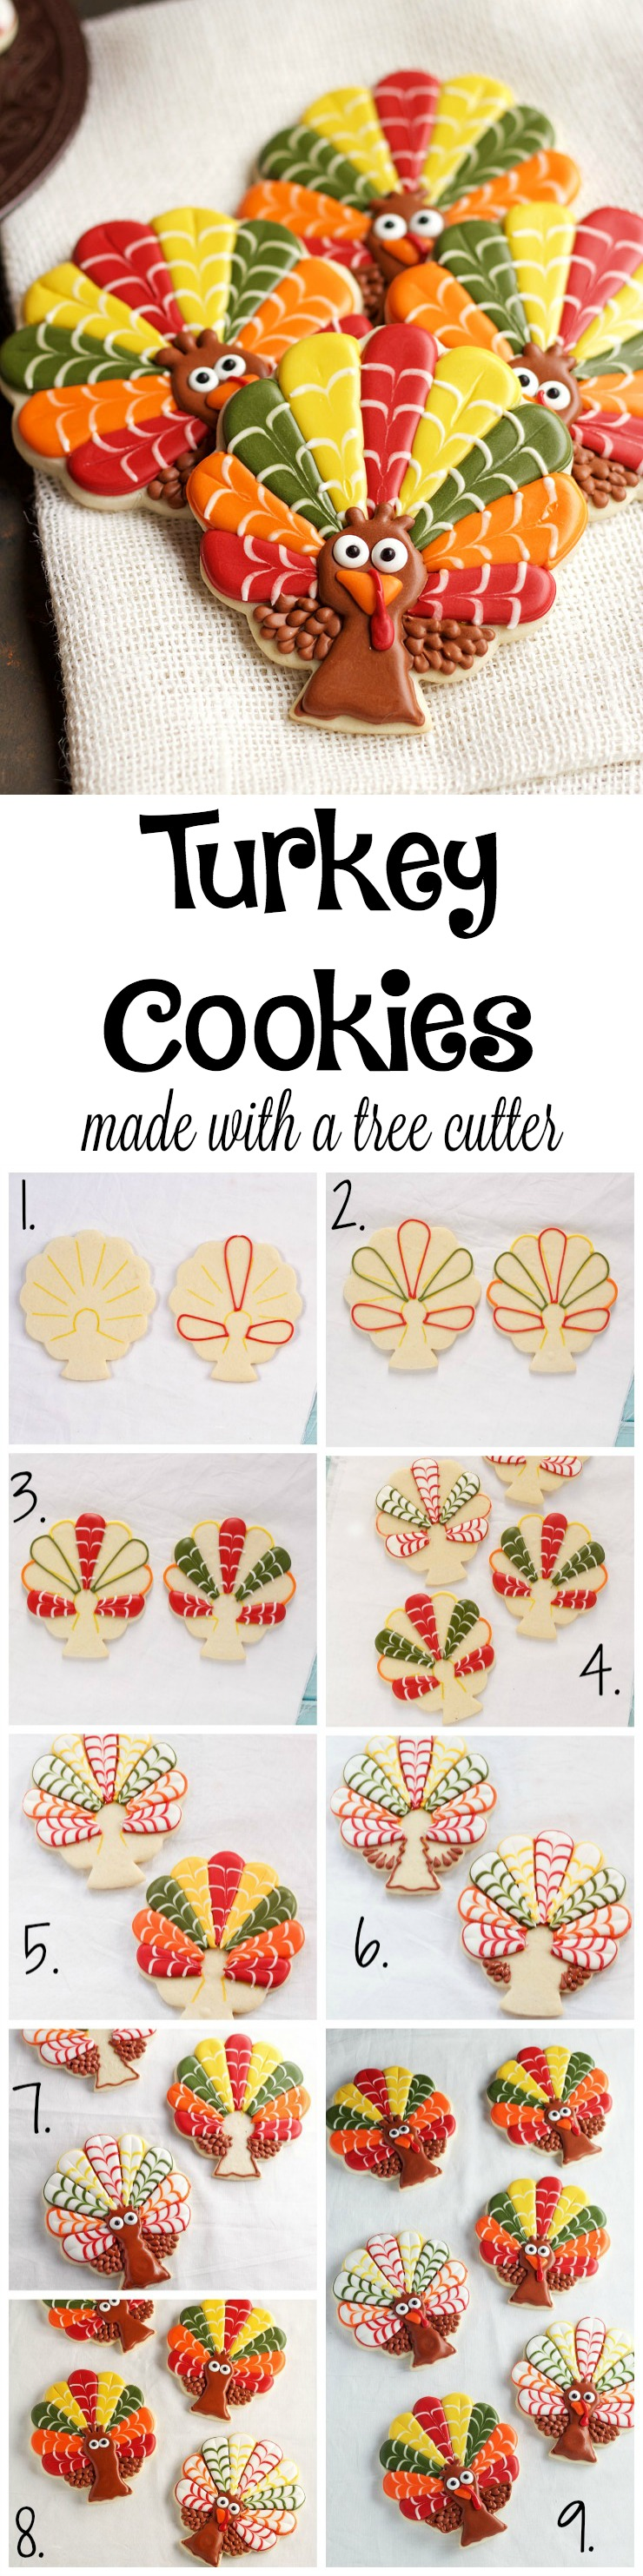 Decorated Turkey Cookies | The Beafoot Baker